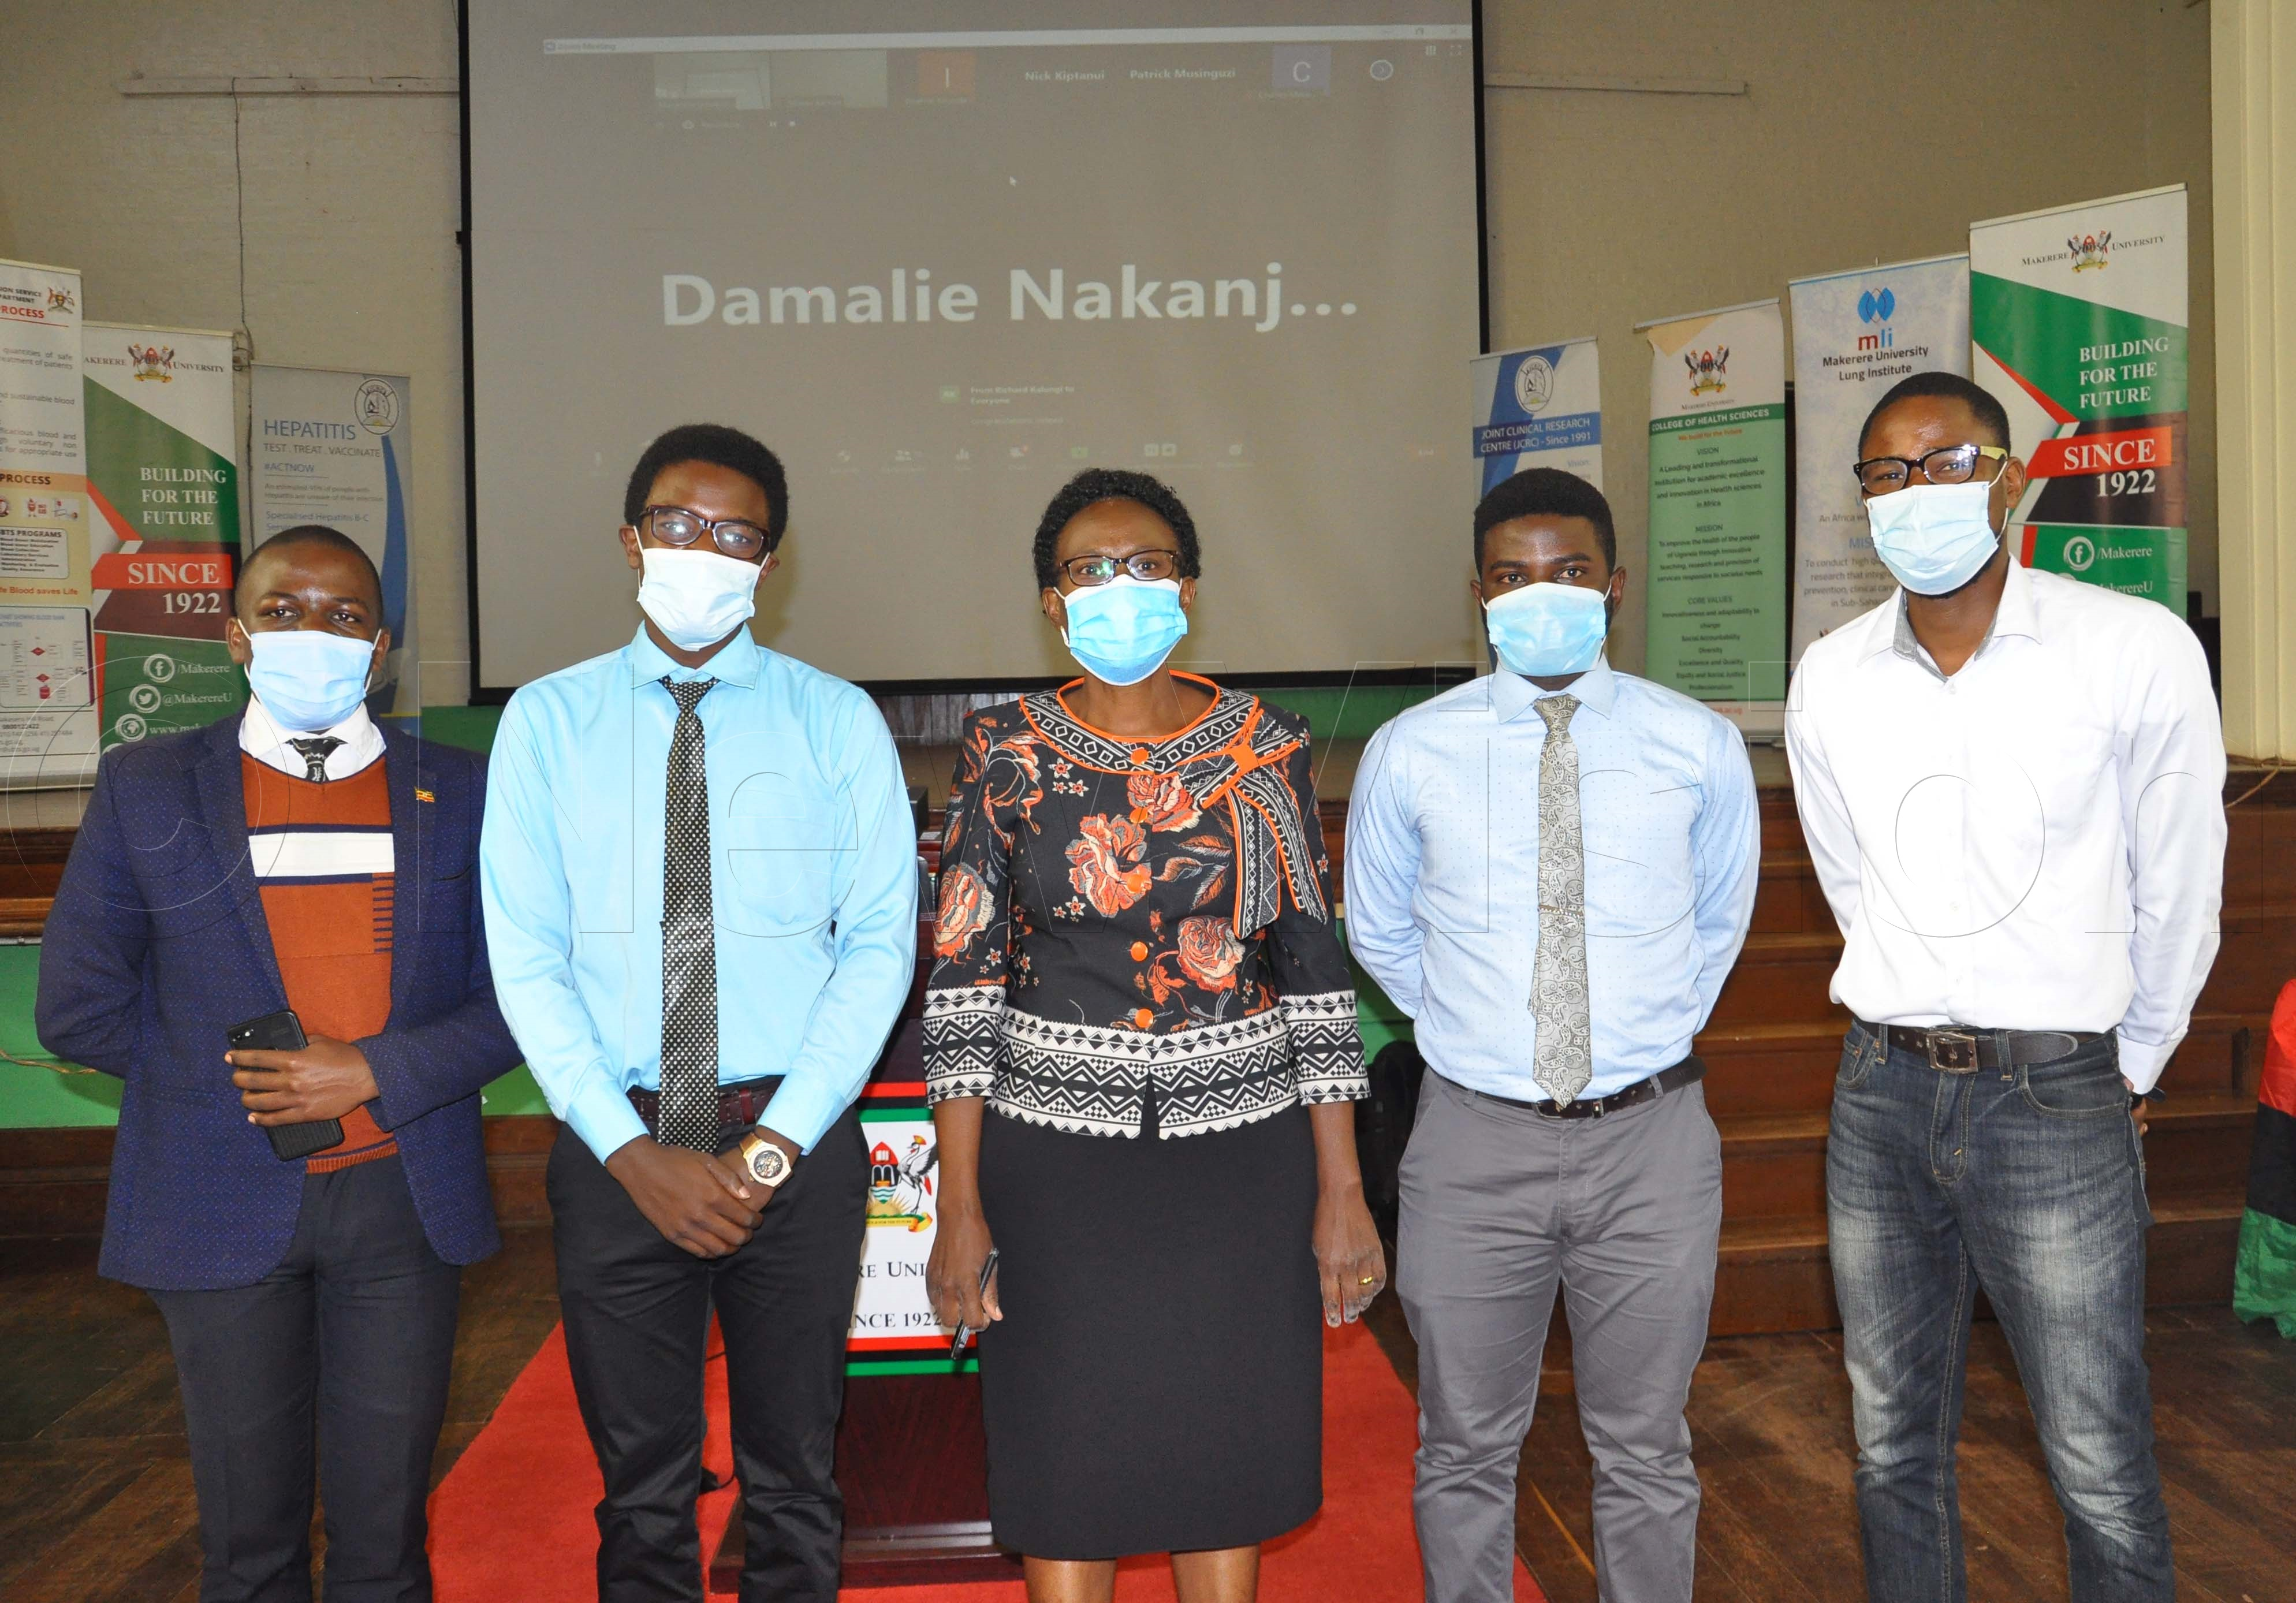 Aceng with some team members who have been working on the project. Photos by nancy Nanyonga